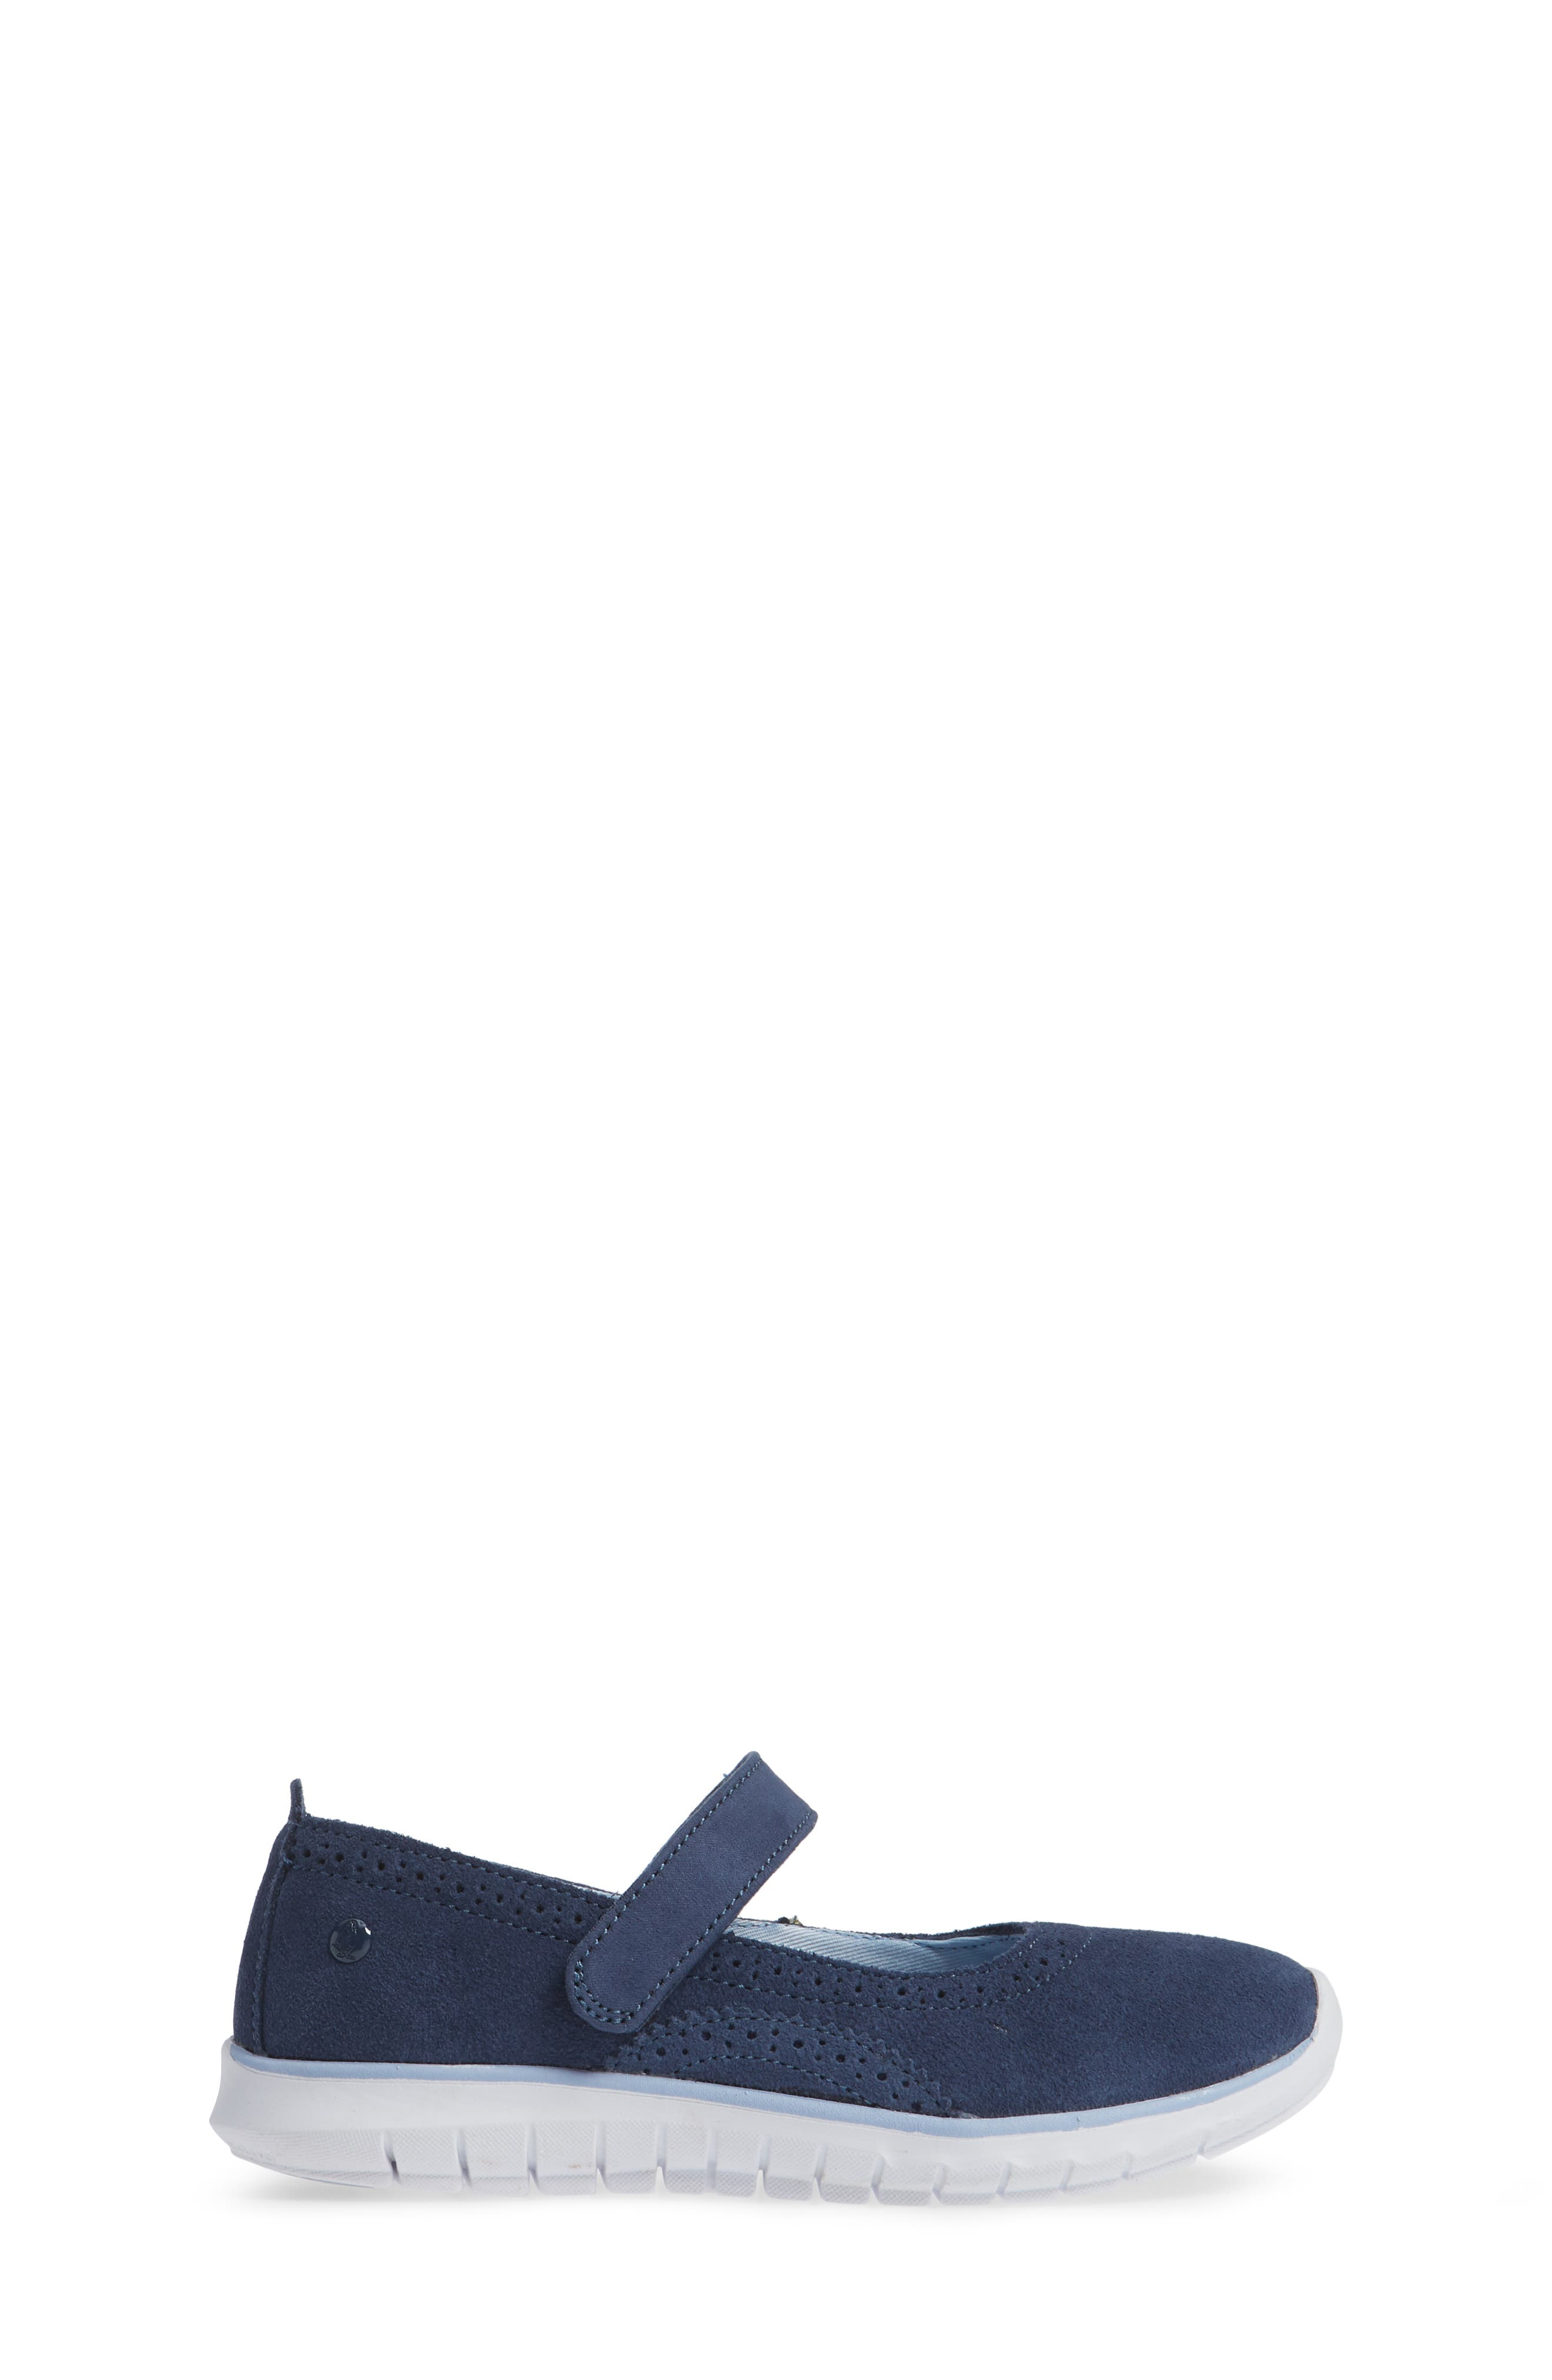 Flote Tricia Mary Jane Flat,                             Alternate thumbnail 3, color,                             NAVY